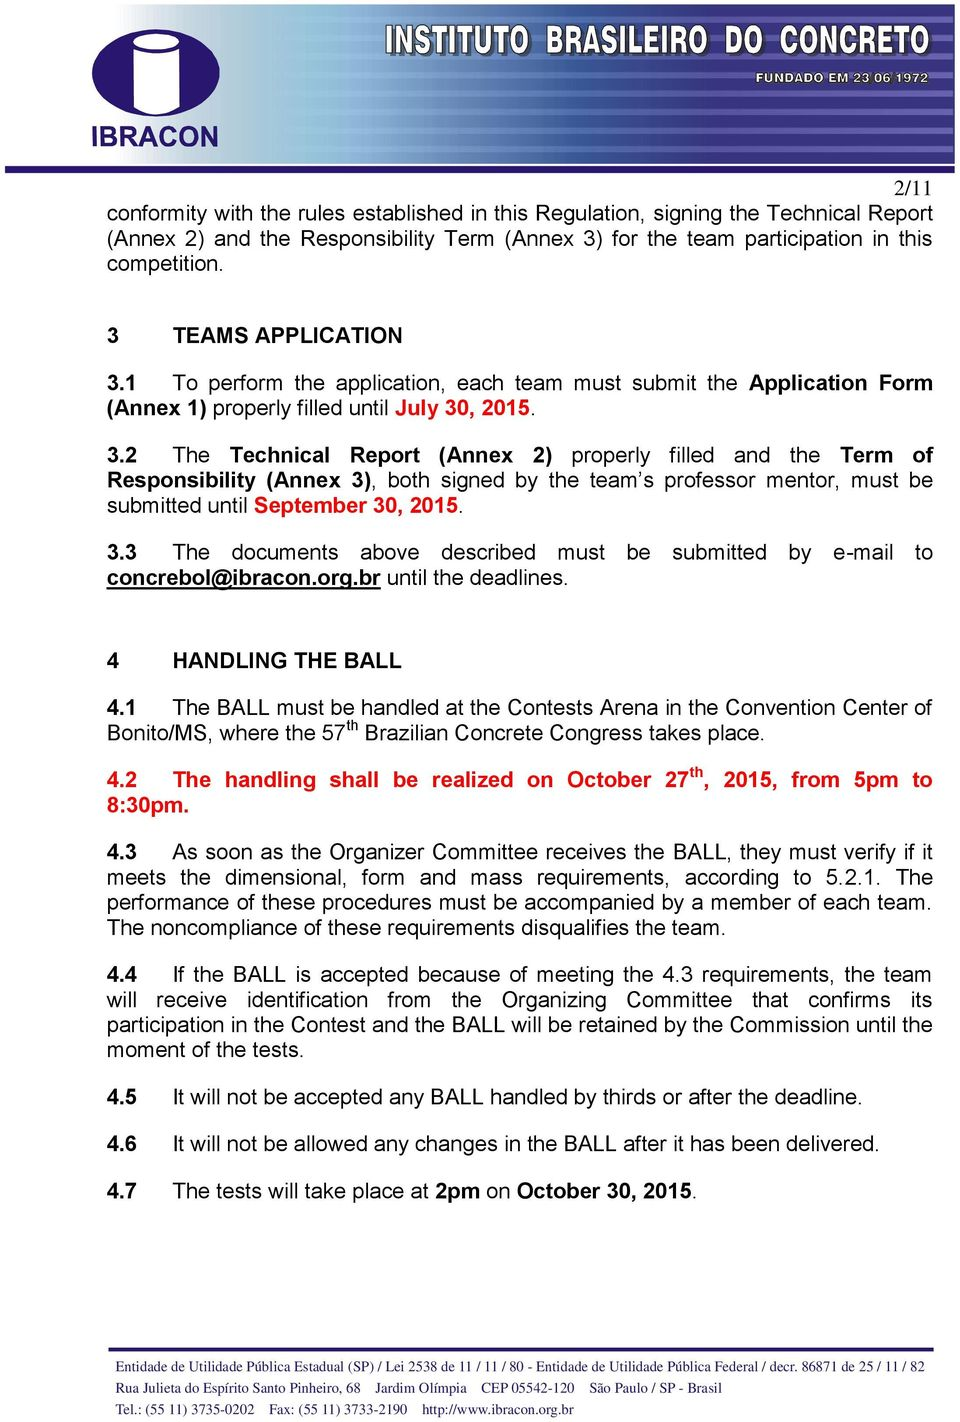 3.3 The documents above described must be submitted by e-mail to concrebol@ibracon.org.br until the deadlines. 4 HANDLING THE BALL 4.